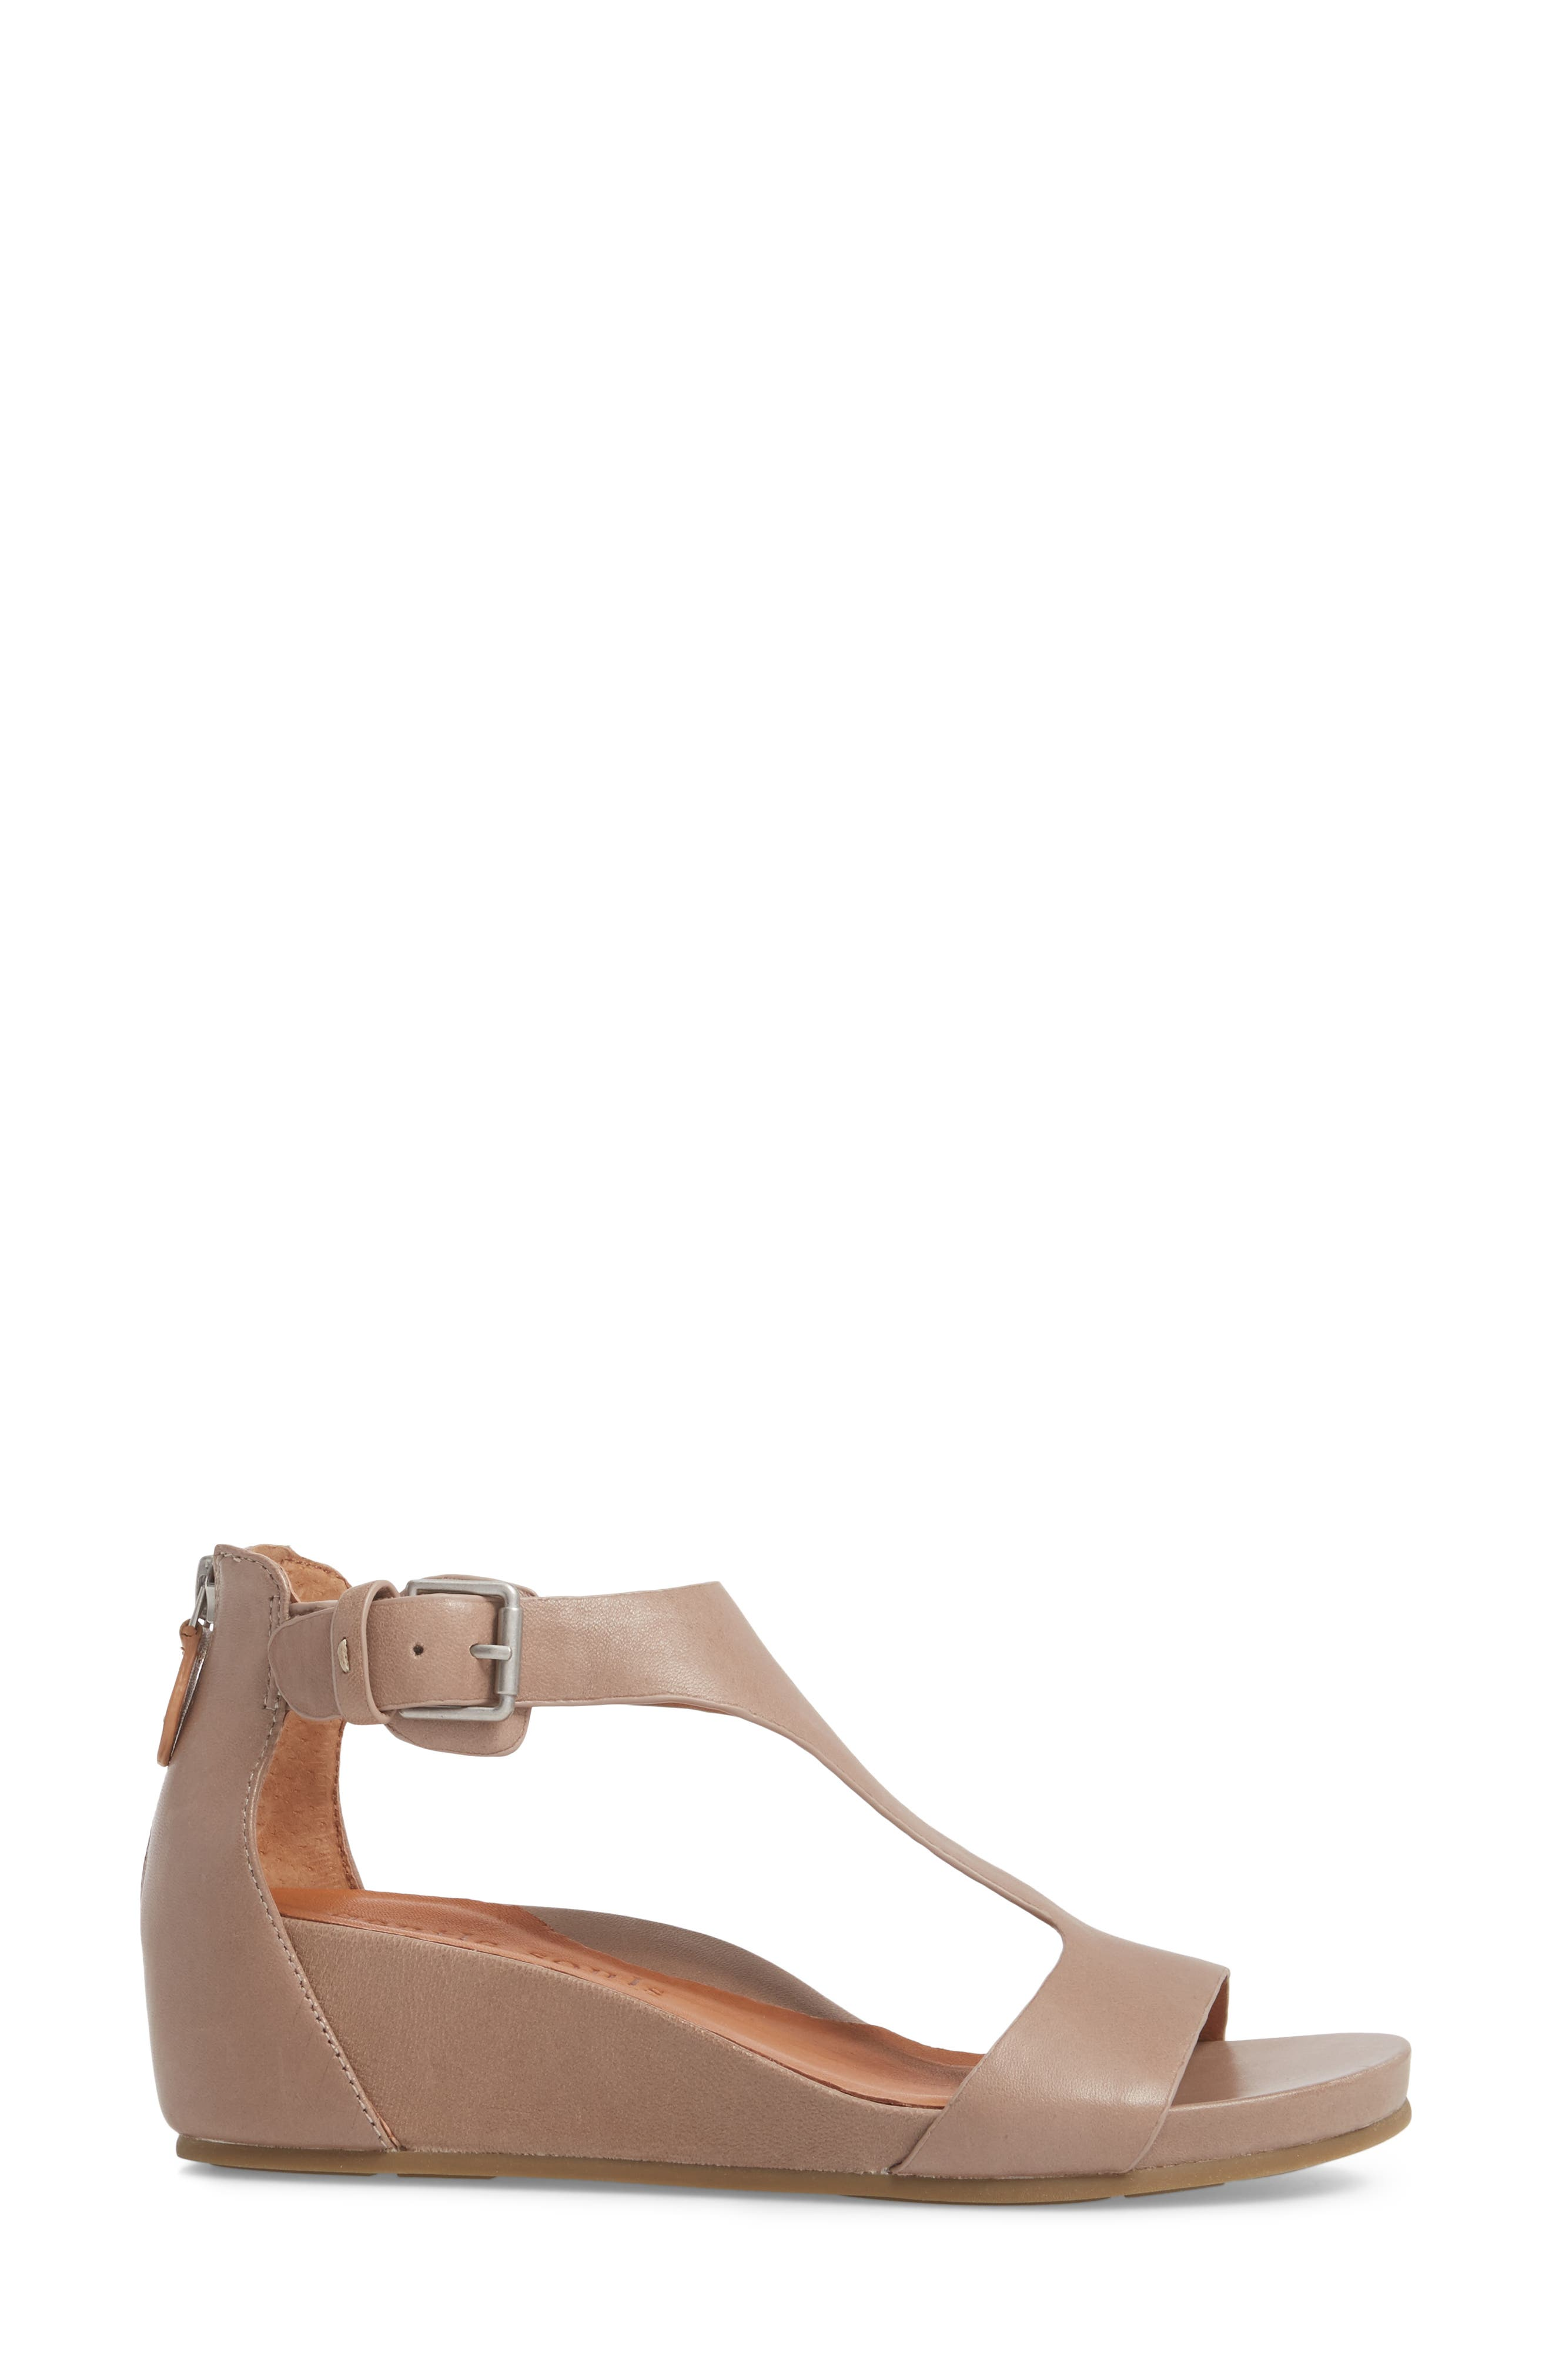 GENTLE SOULS BY KENNETH COLE, Gisele Wedge Sandal, Alternate thumbnail 3, color, PUTTY LEATHER